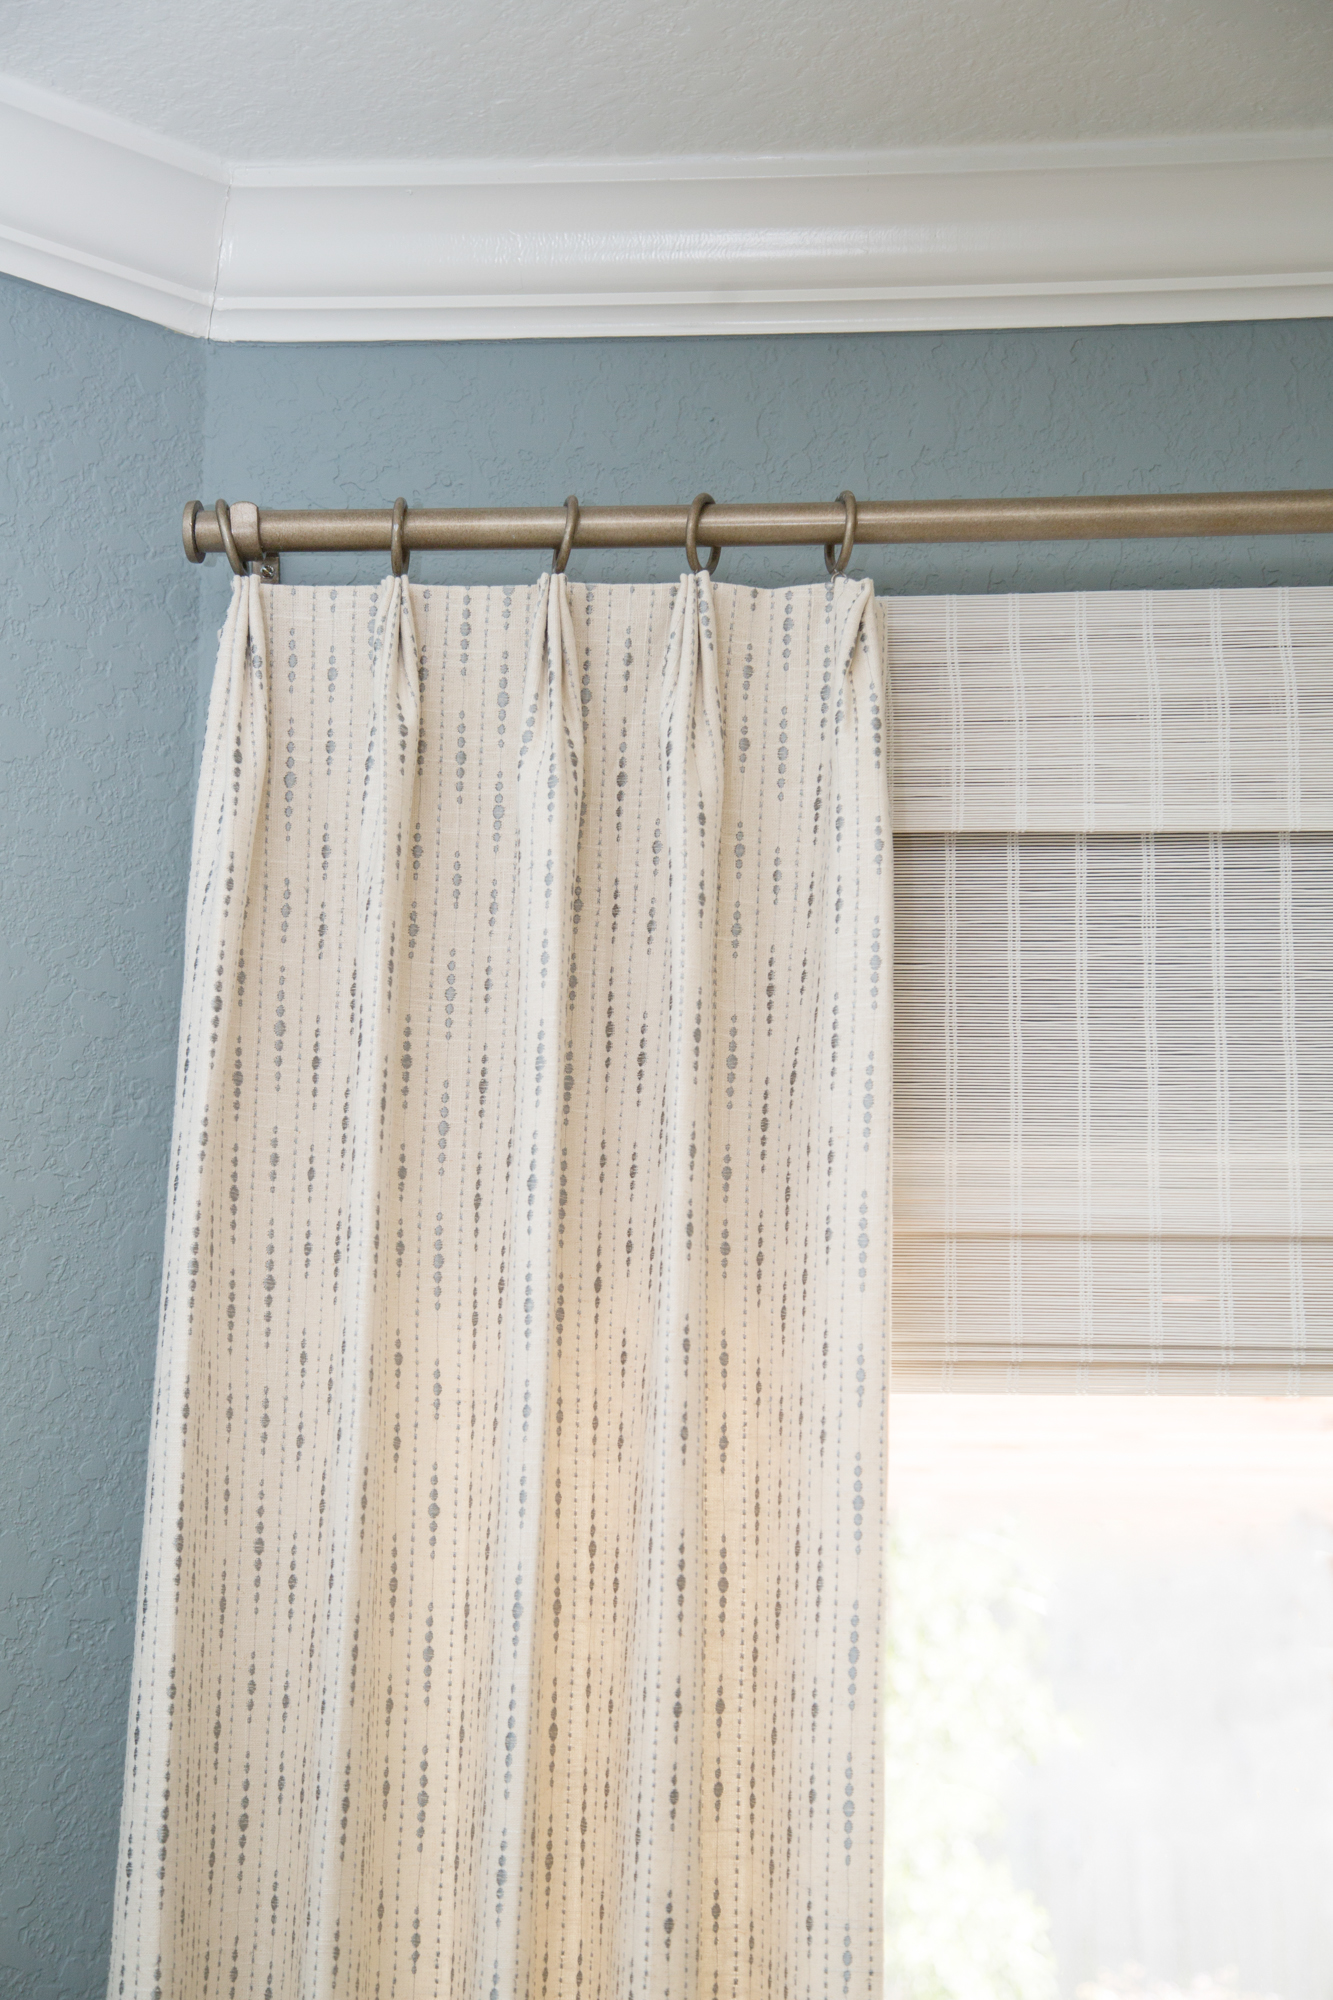 Window treatment with woven wood shades and stationary drapery panels |  Carla Aston, Designer #windowtreatment #draperypanels #wovenwoodshade